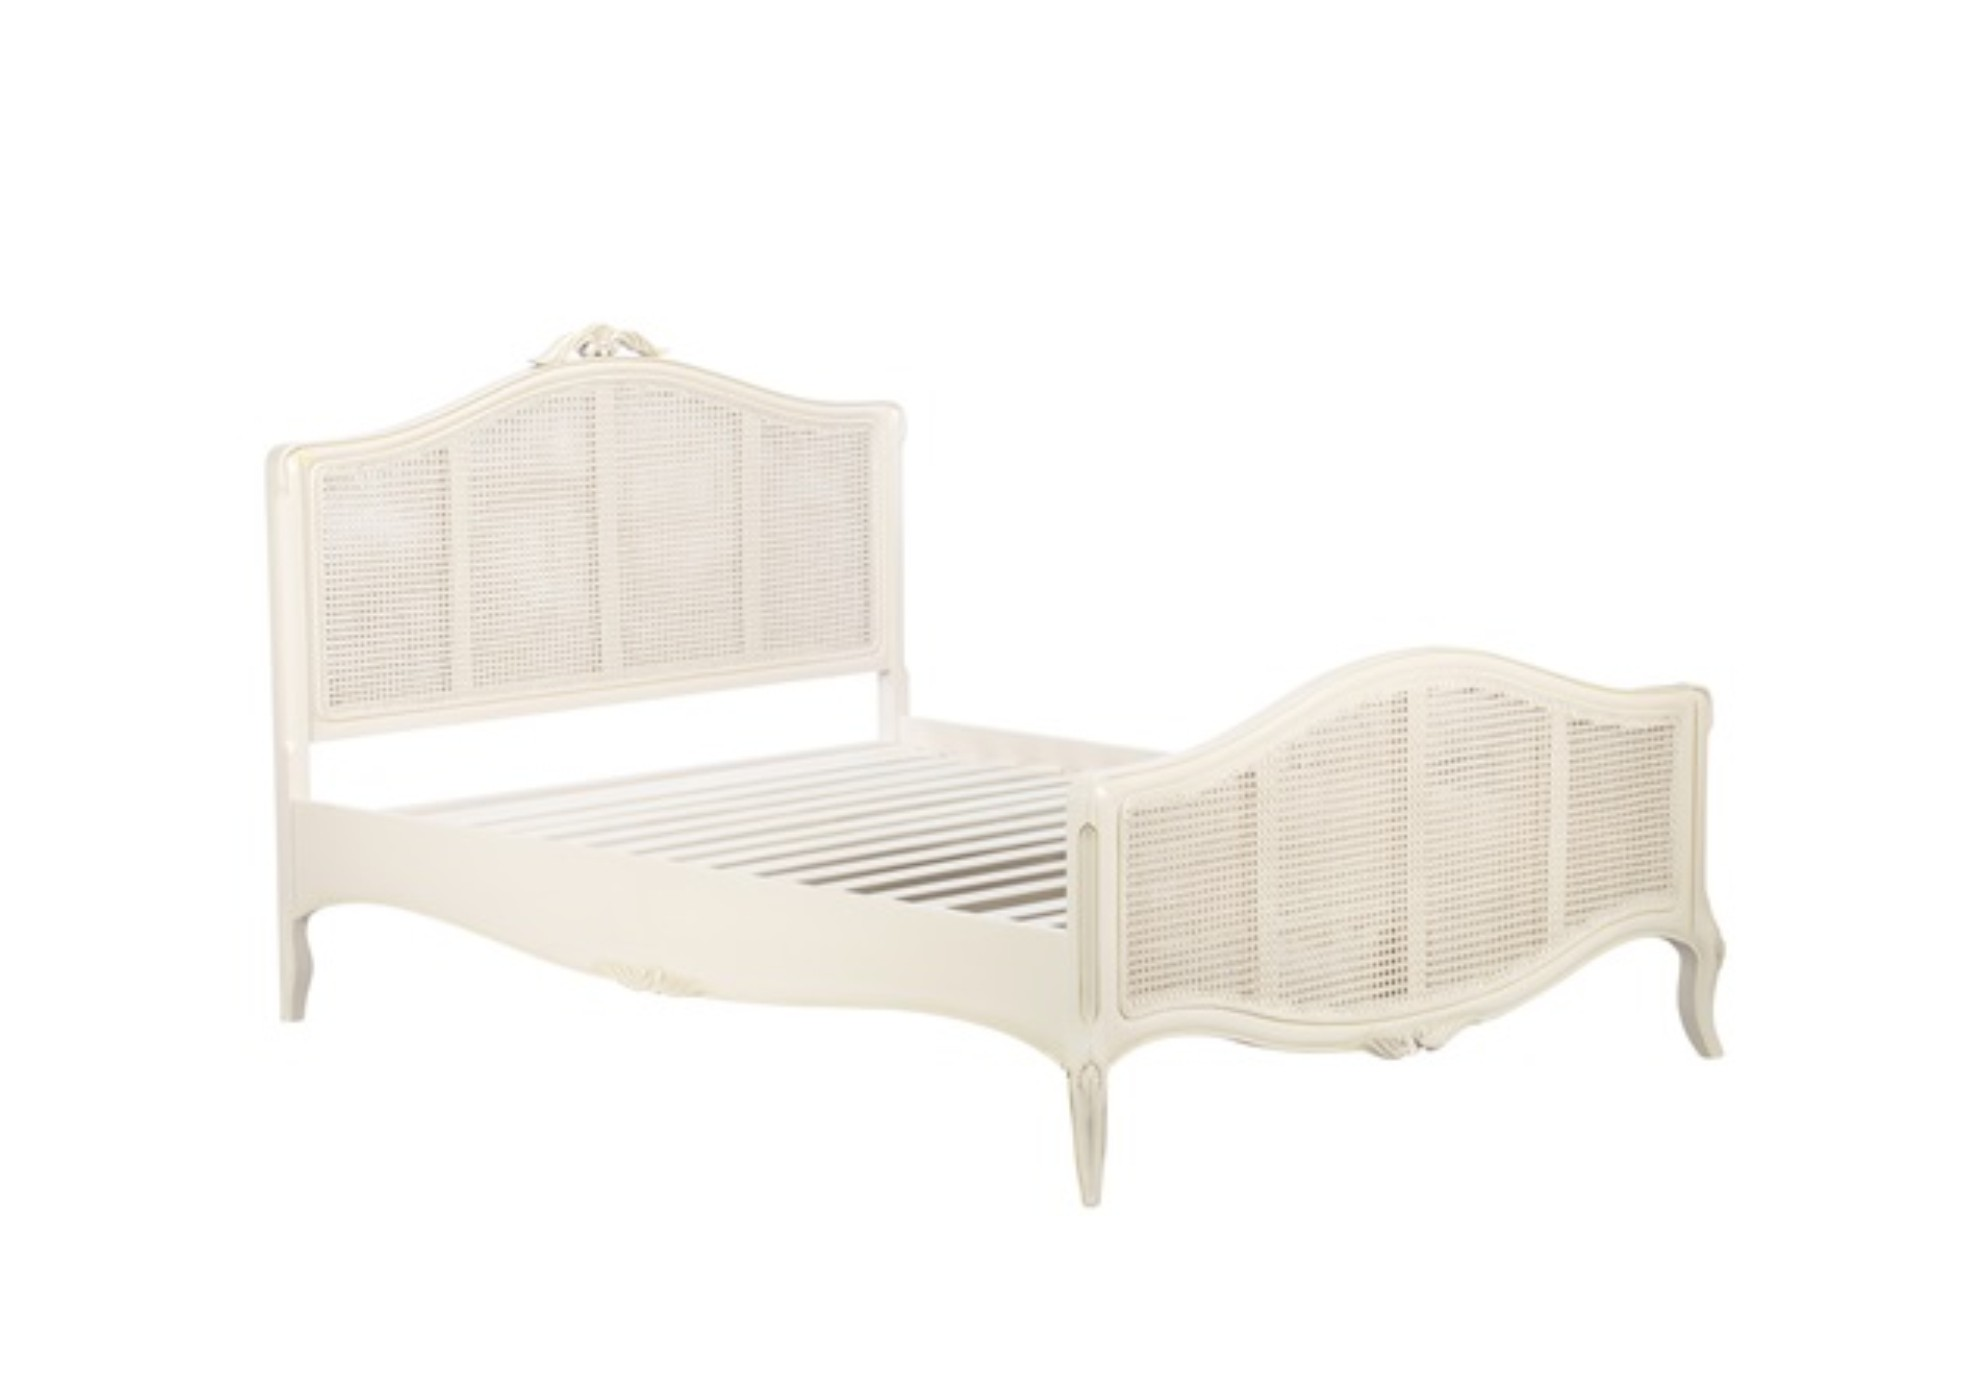 Painted Toulouse Bedstead